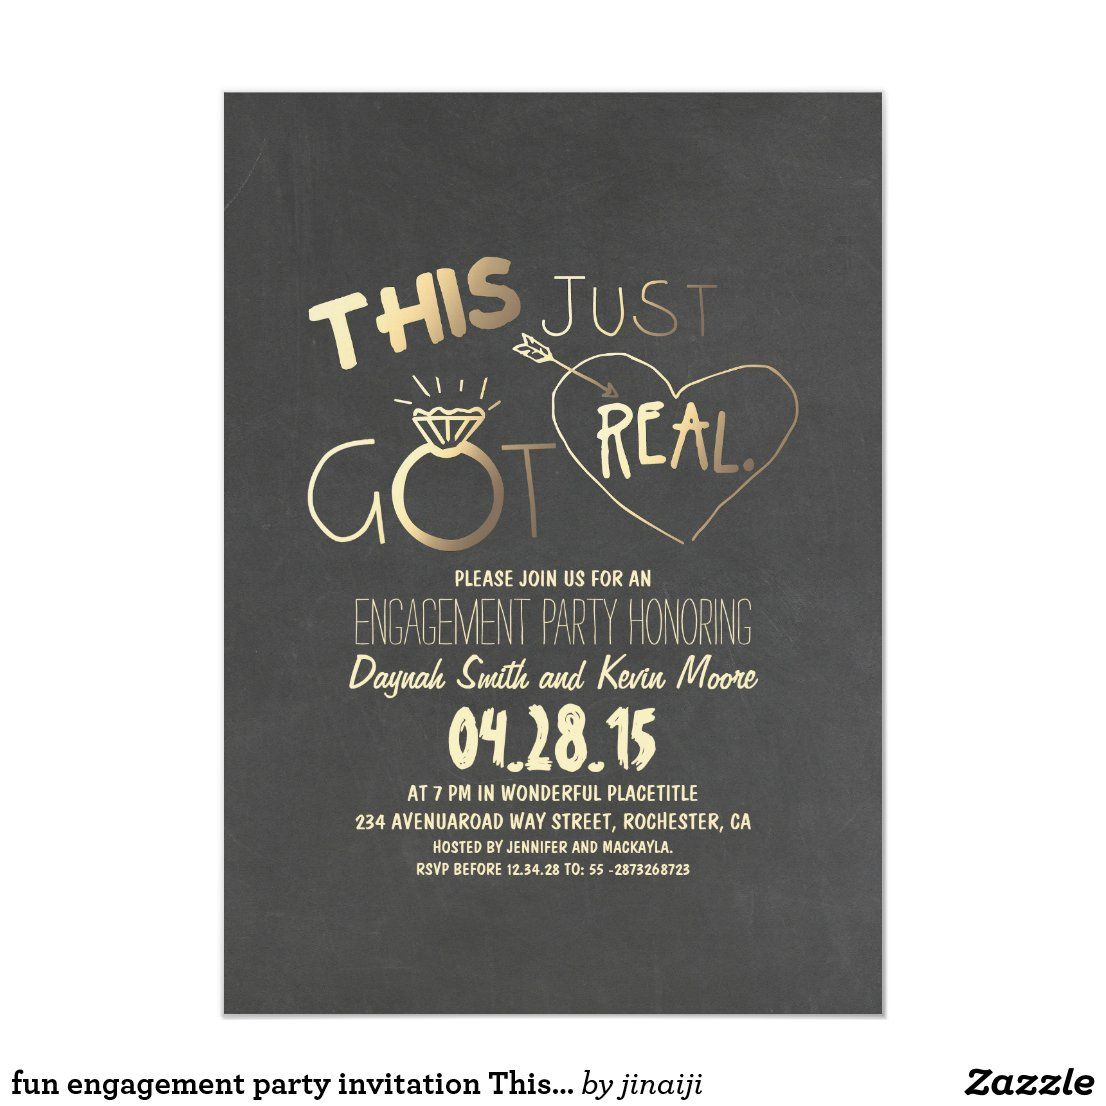 Fun Engagement Party Invitation This Just Got Real Zazzle Com Fun Engagement Party Engagement Party Invitations Fun Engagement